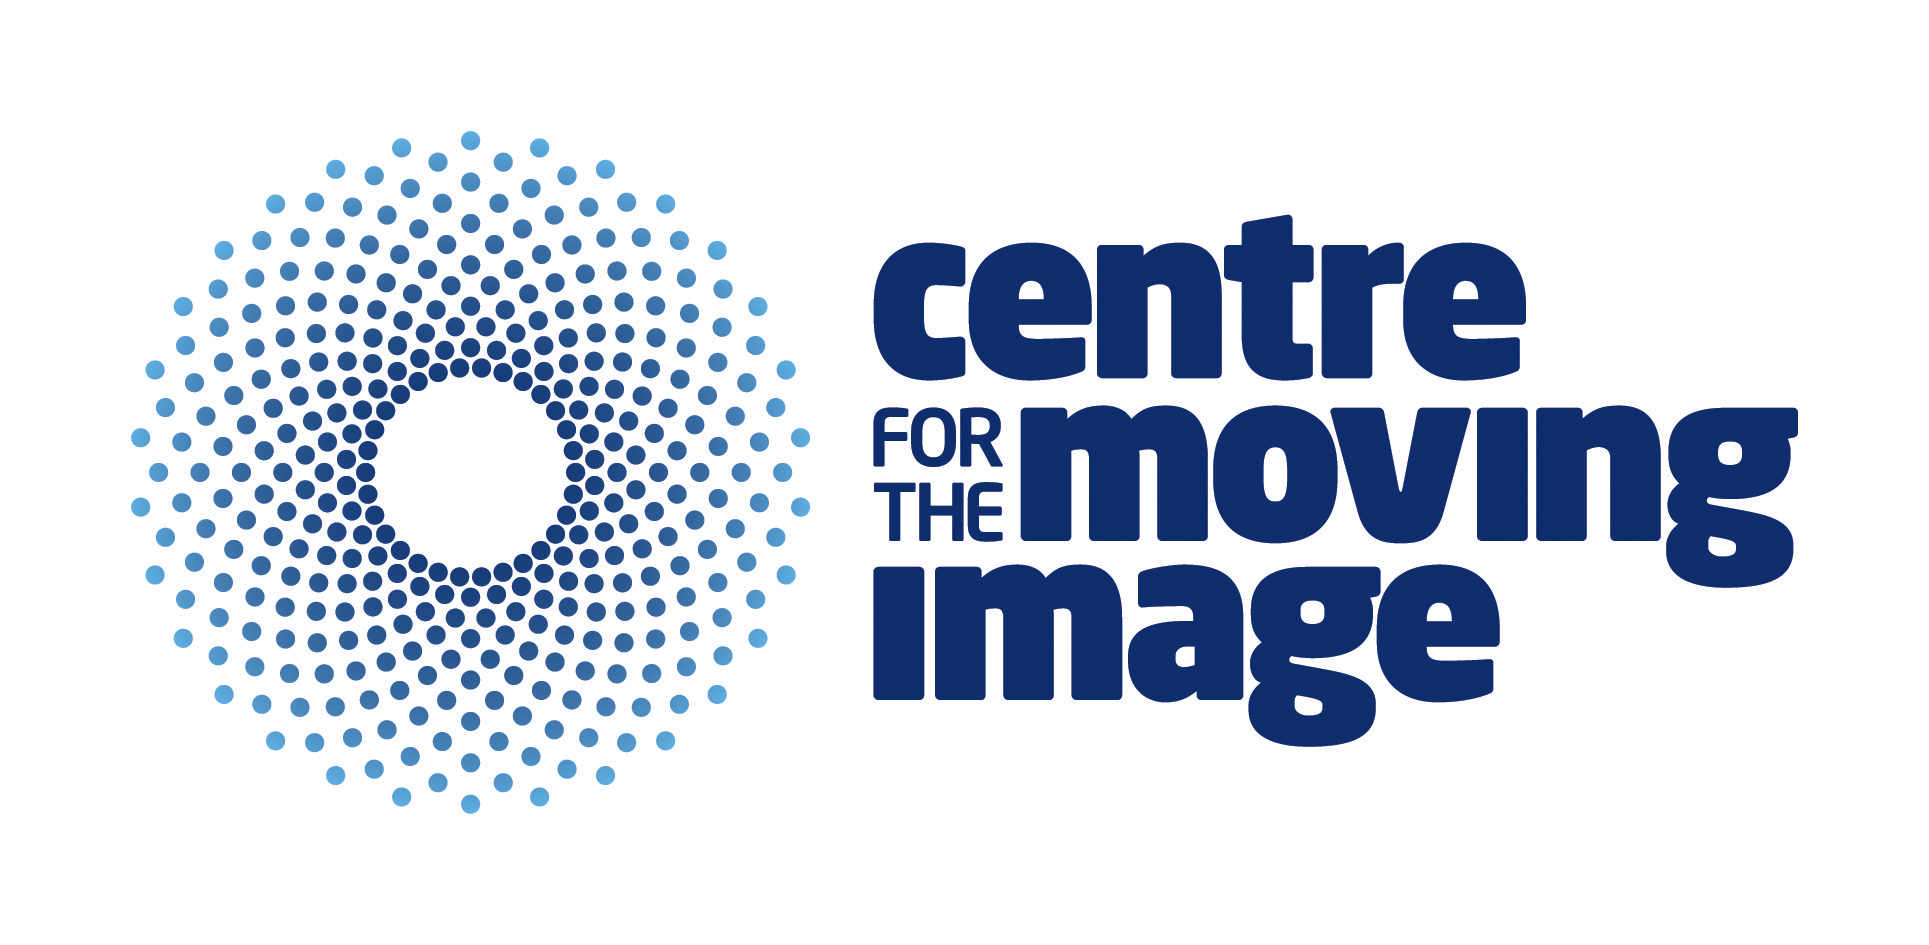 Centre for the Moving Image - Edinburgh Filmhouse, Belmont Filmhouse (Aberdeen) & Edinburgh Internat